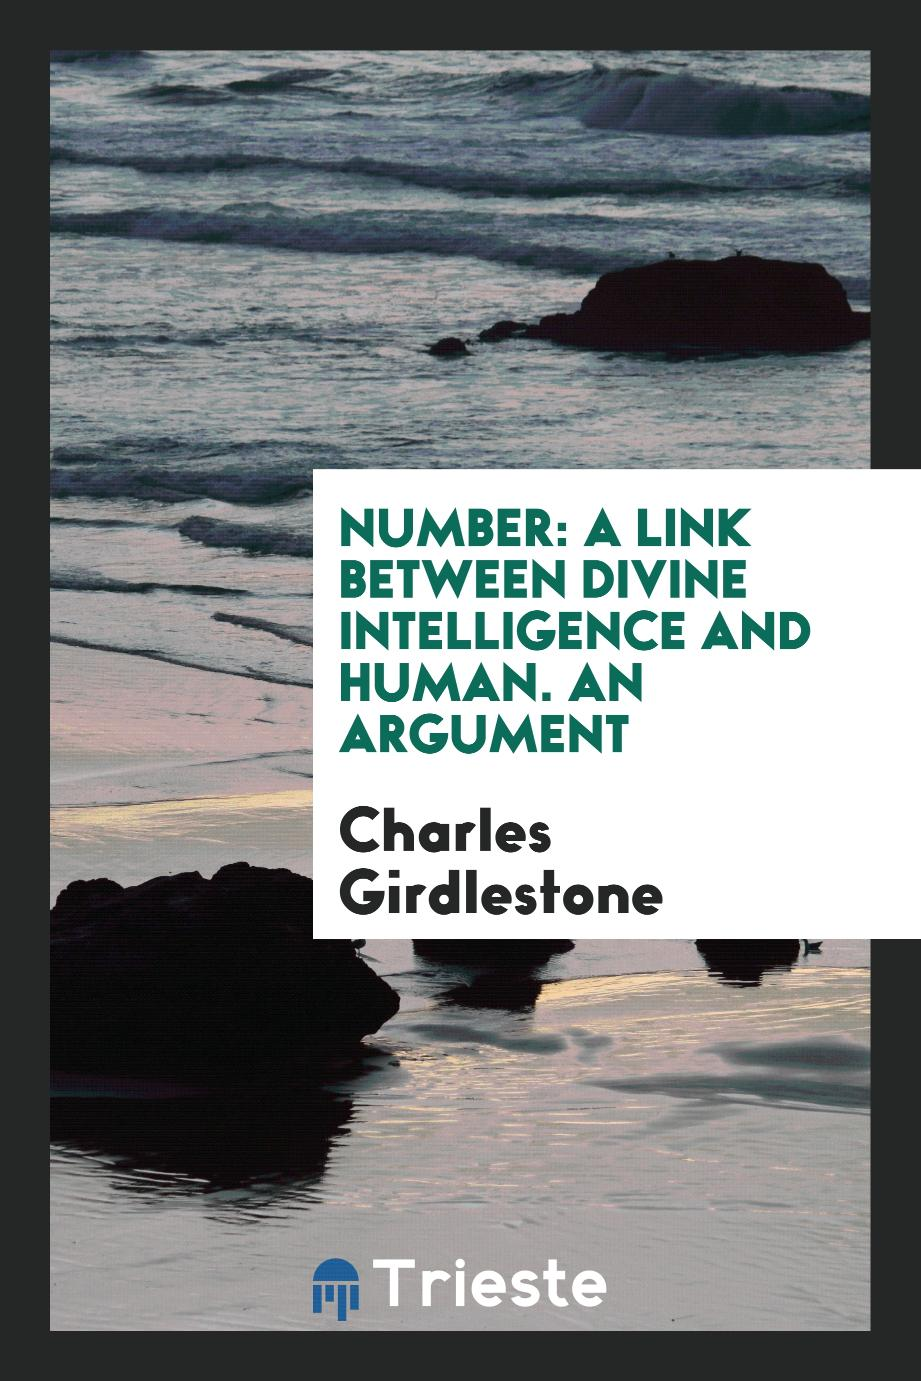 Number: A Link Between Divine Intelligence and Human. An Argument